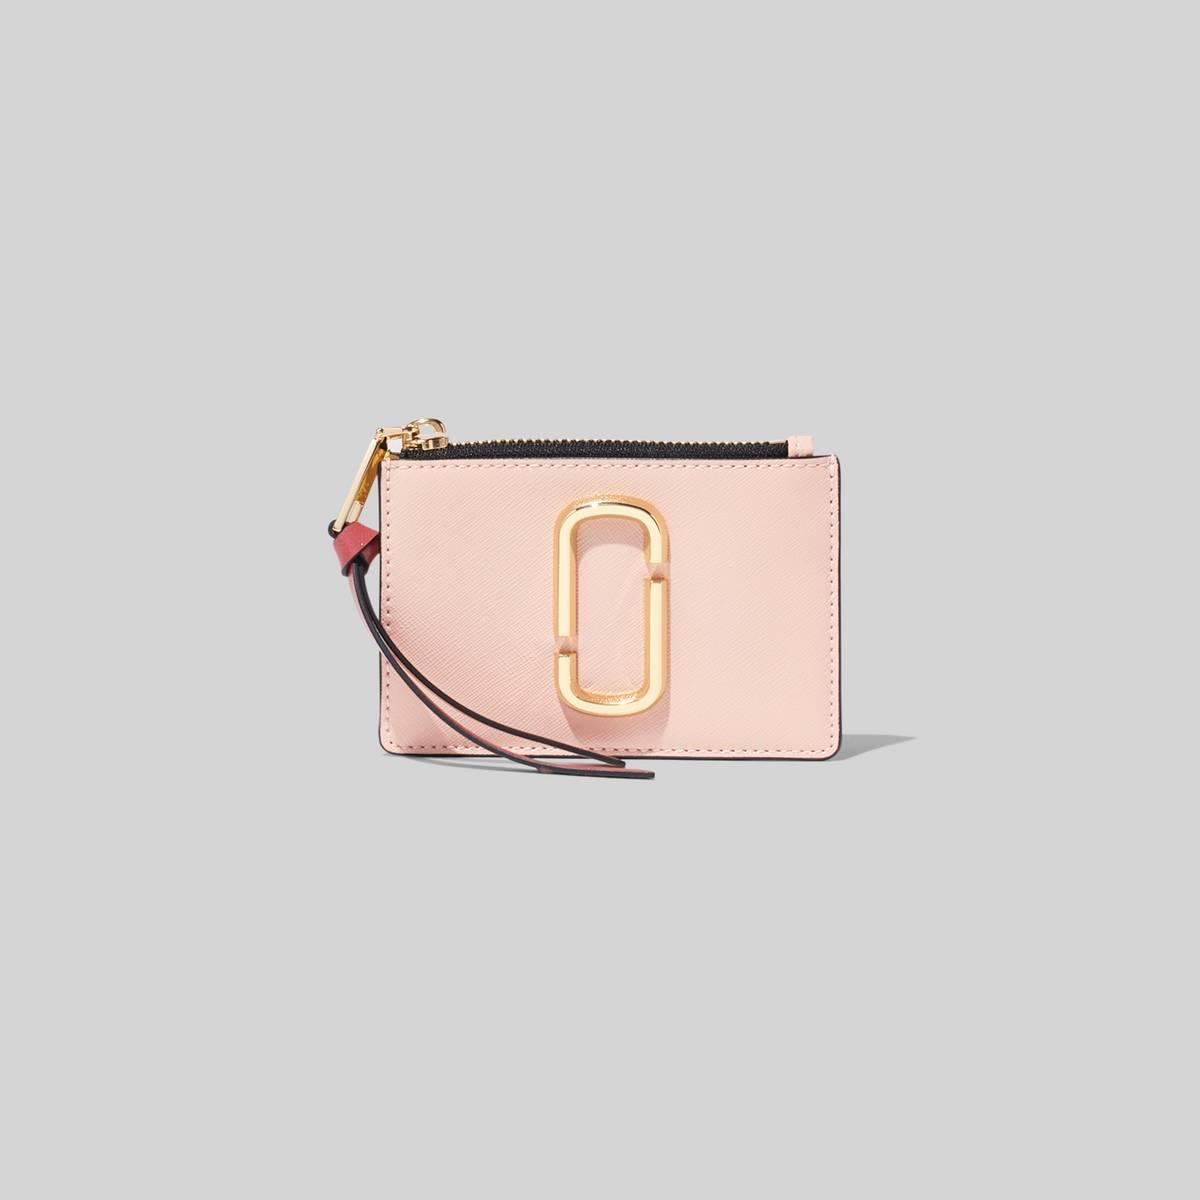 Mini leather wallet with keyring and Double-J hardware. | MARC JACOBS Women\\'s The Snapshot Top-Zip Multi Wallet in New Rose Multi